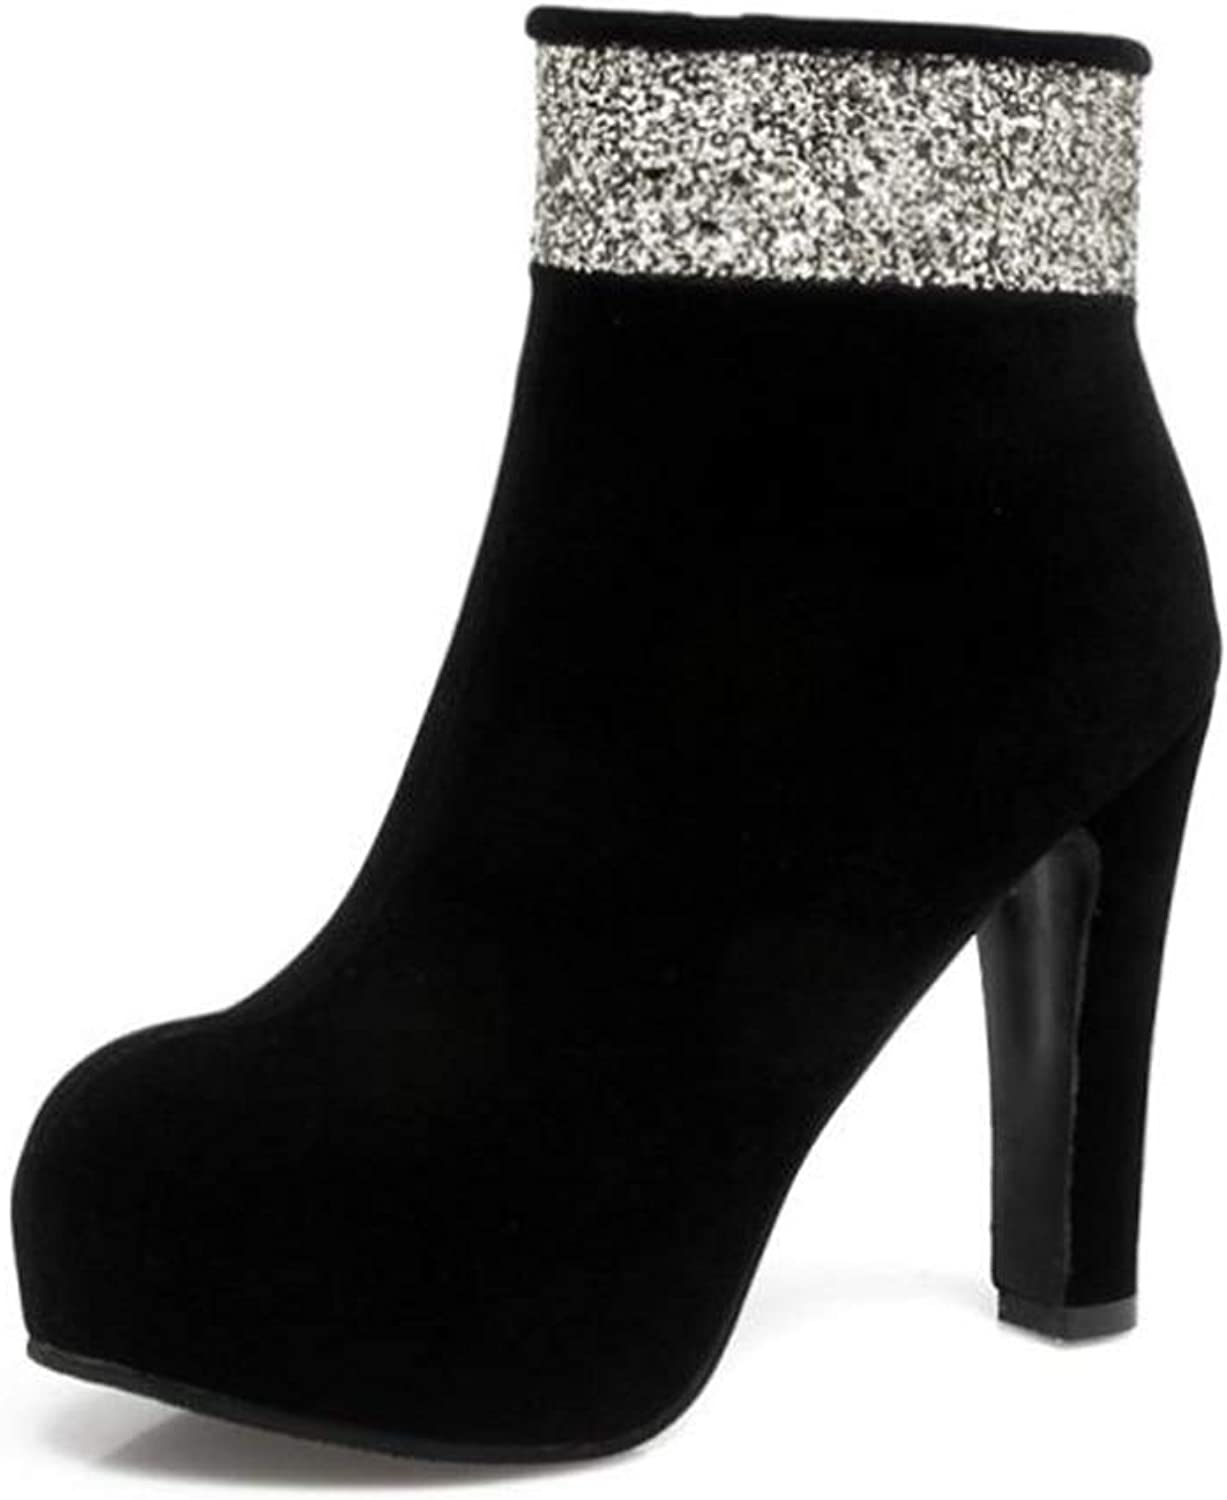 CHENSF Women's Sexy Stiletto Round Toe Zipper Sequins High Heel Ankle Boots